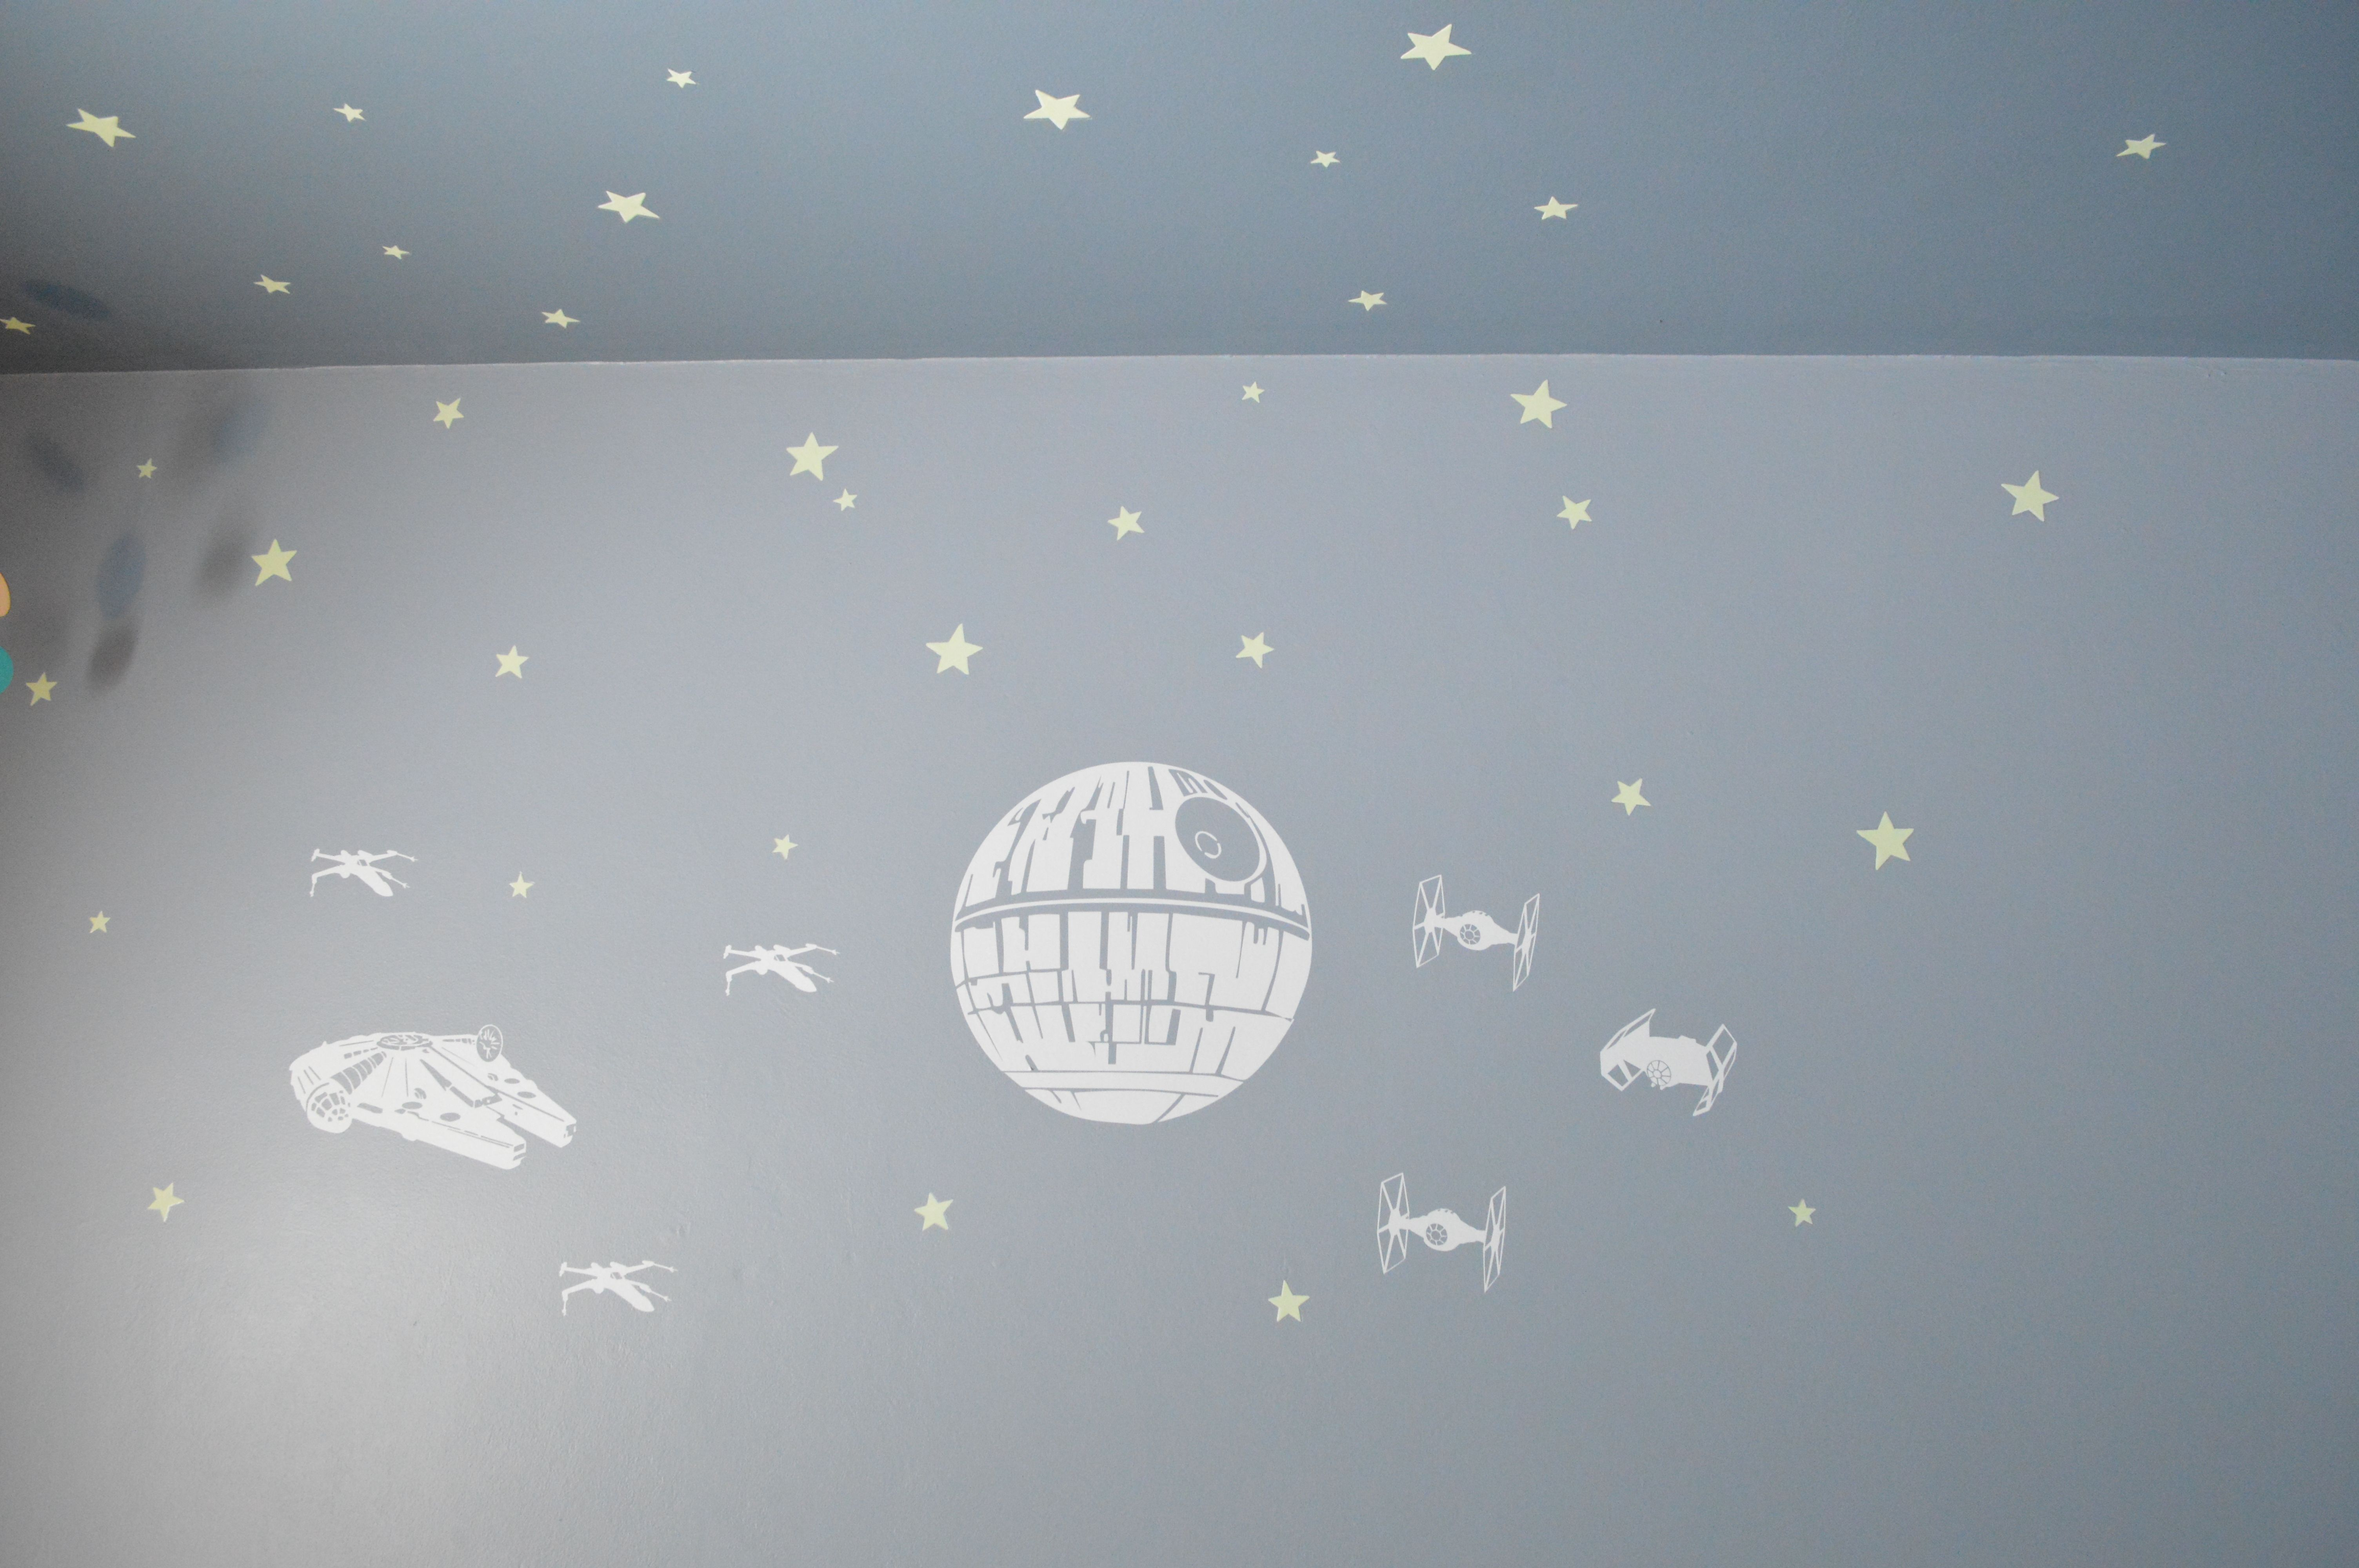 Star Wars Decorations For Bedroom Cheap Star Wars Wall Decor Find Star Wars Wall Decor Deals On Star